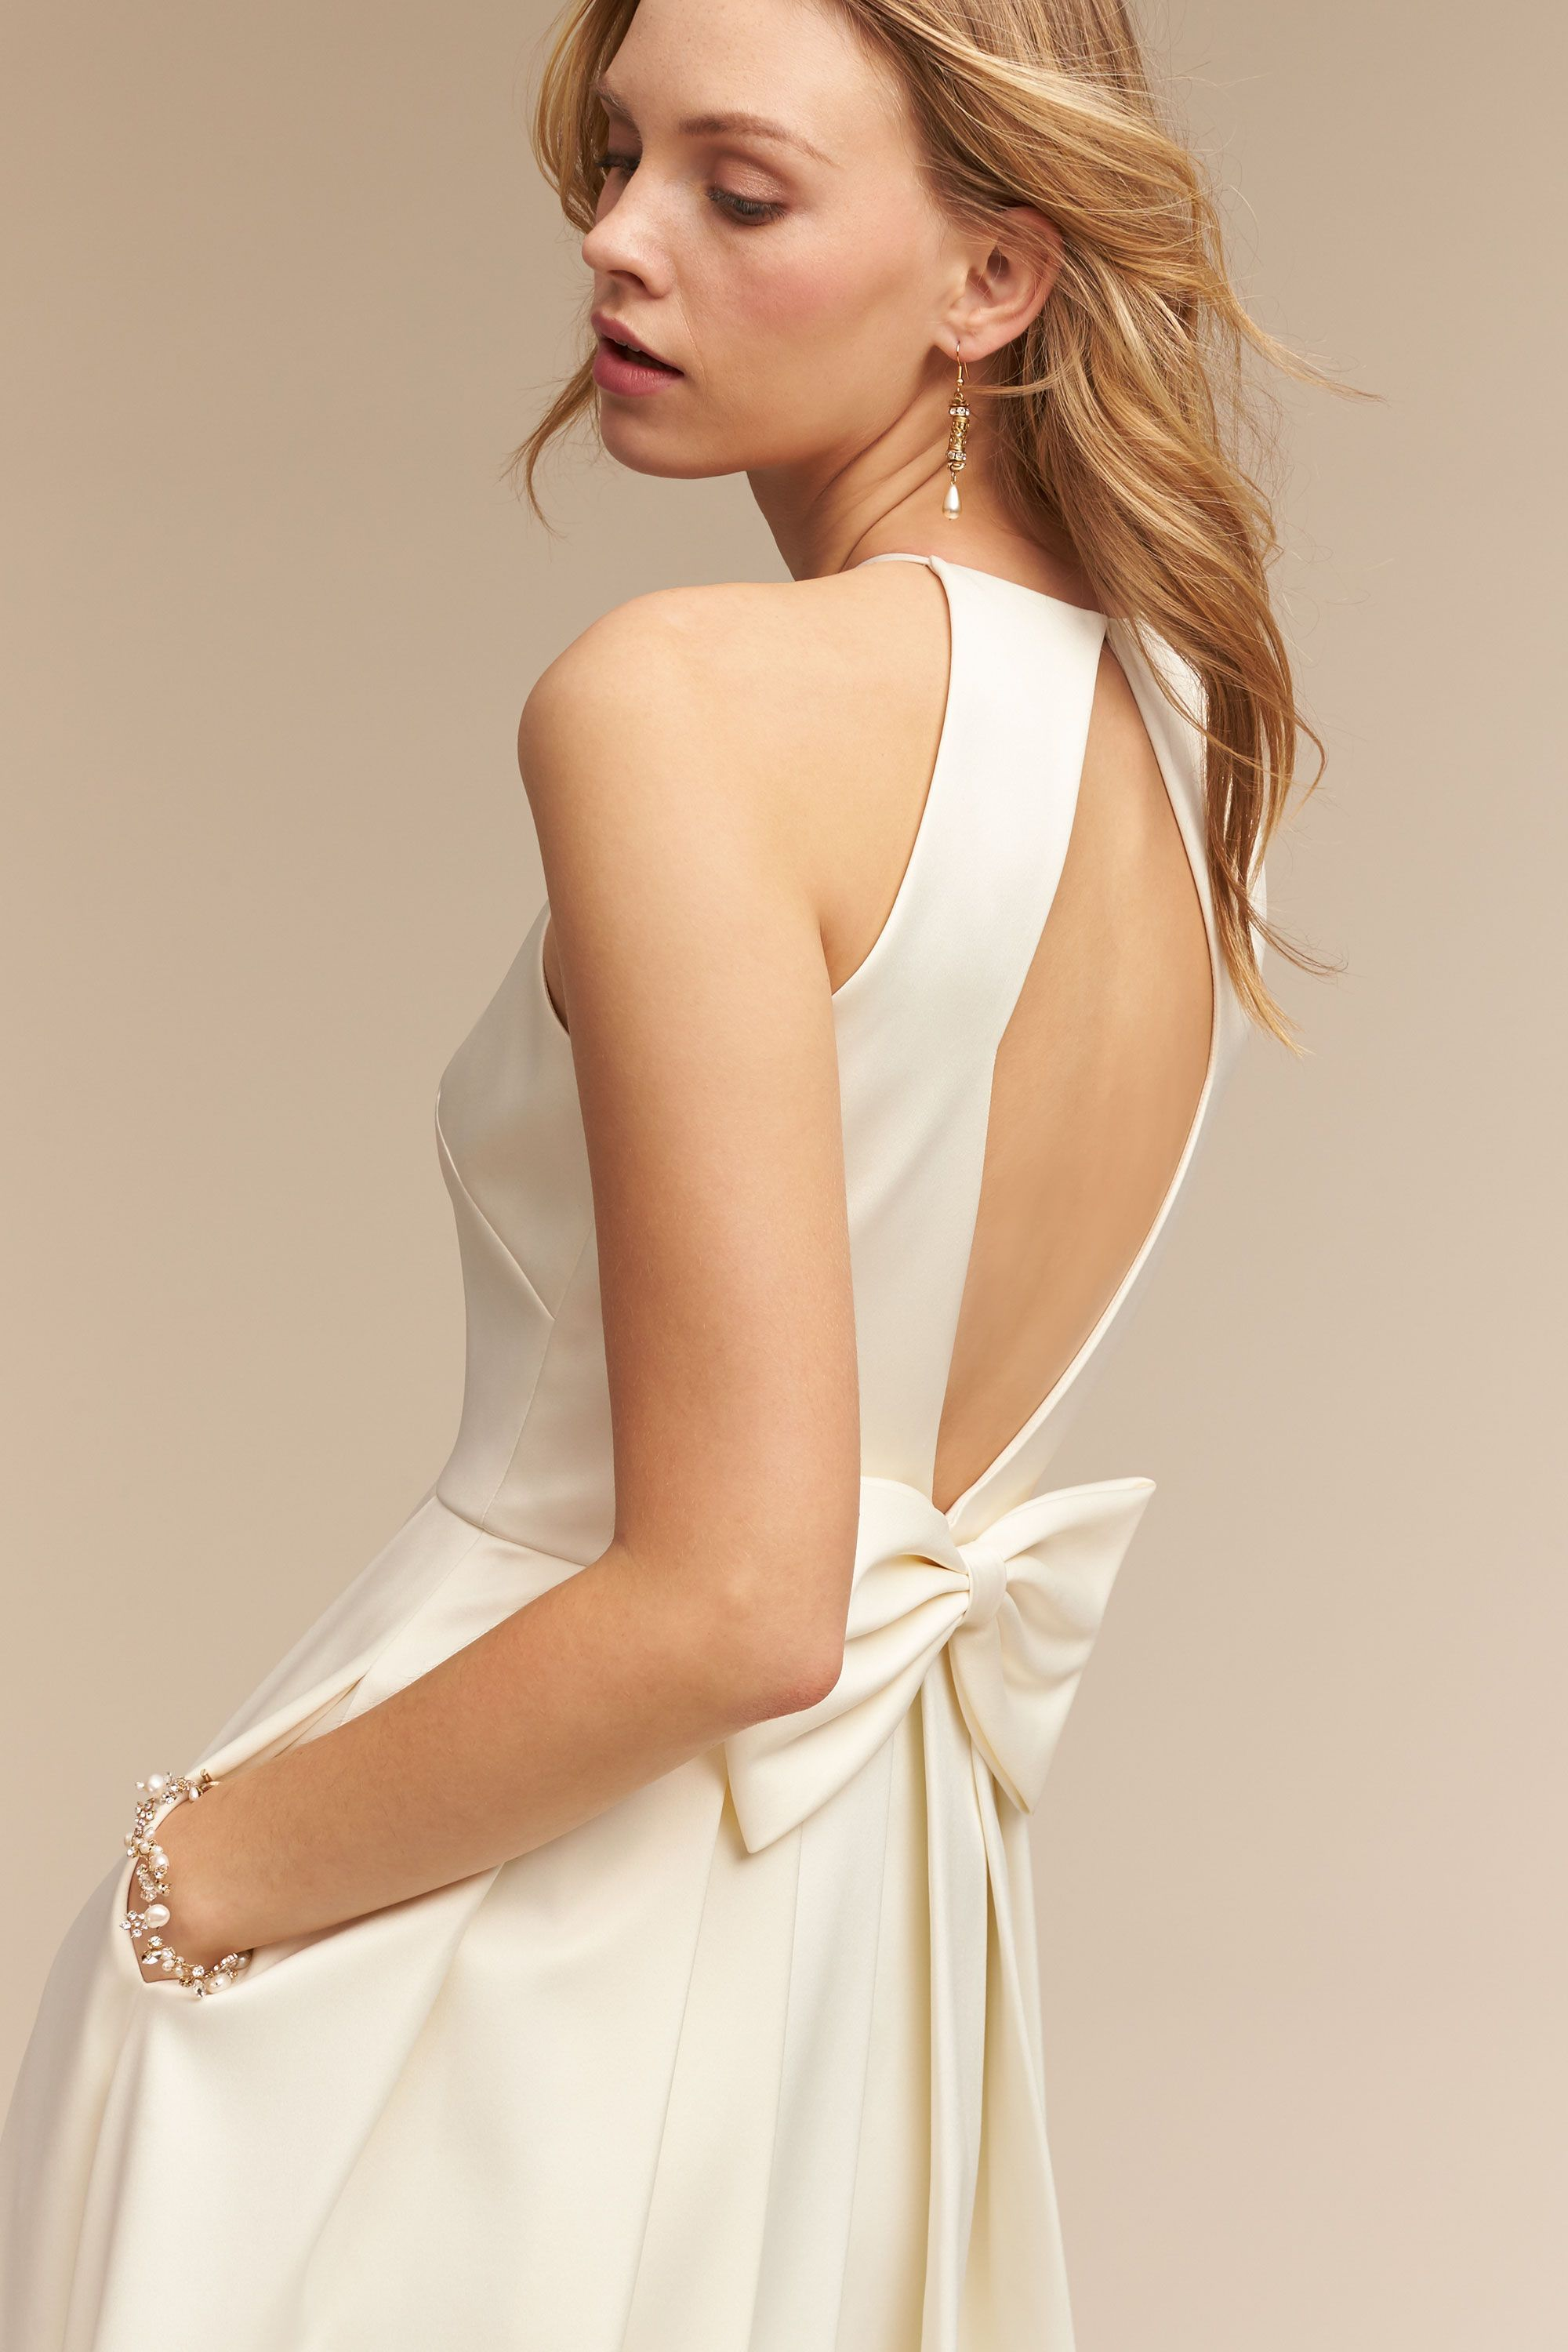 Delancey gown from bhldn lifestyle inspiration pinterest